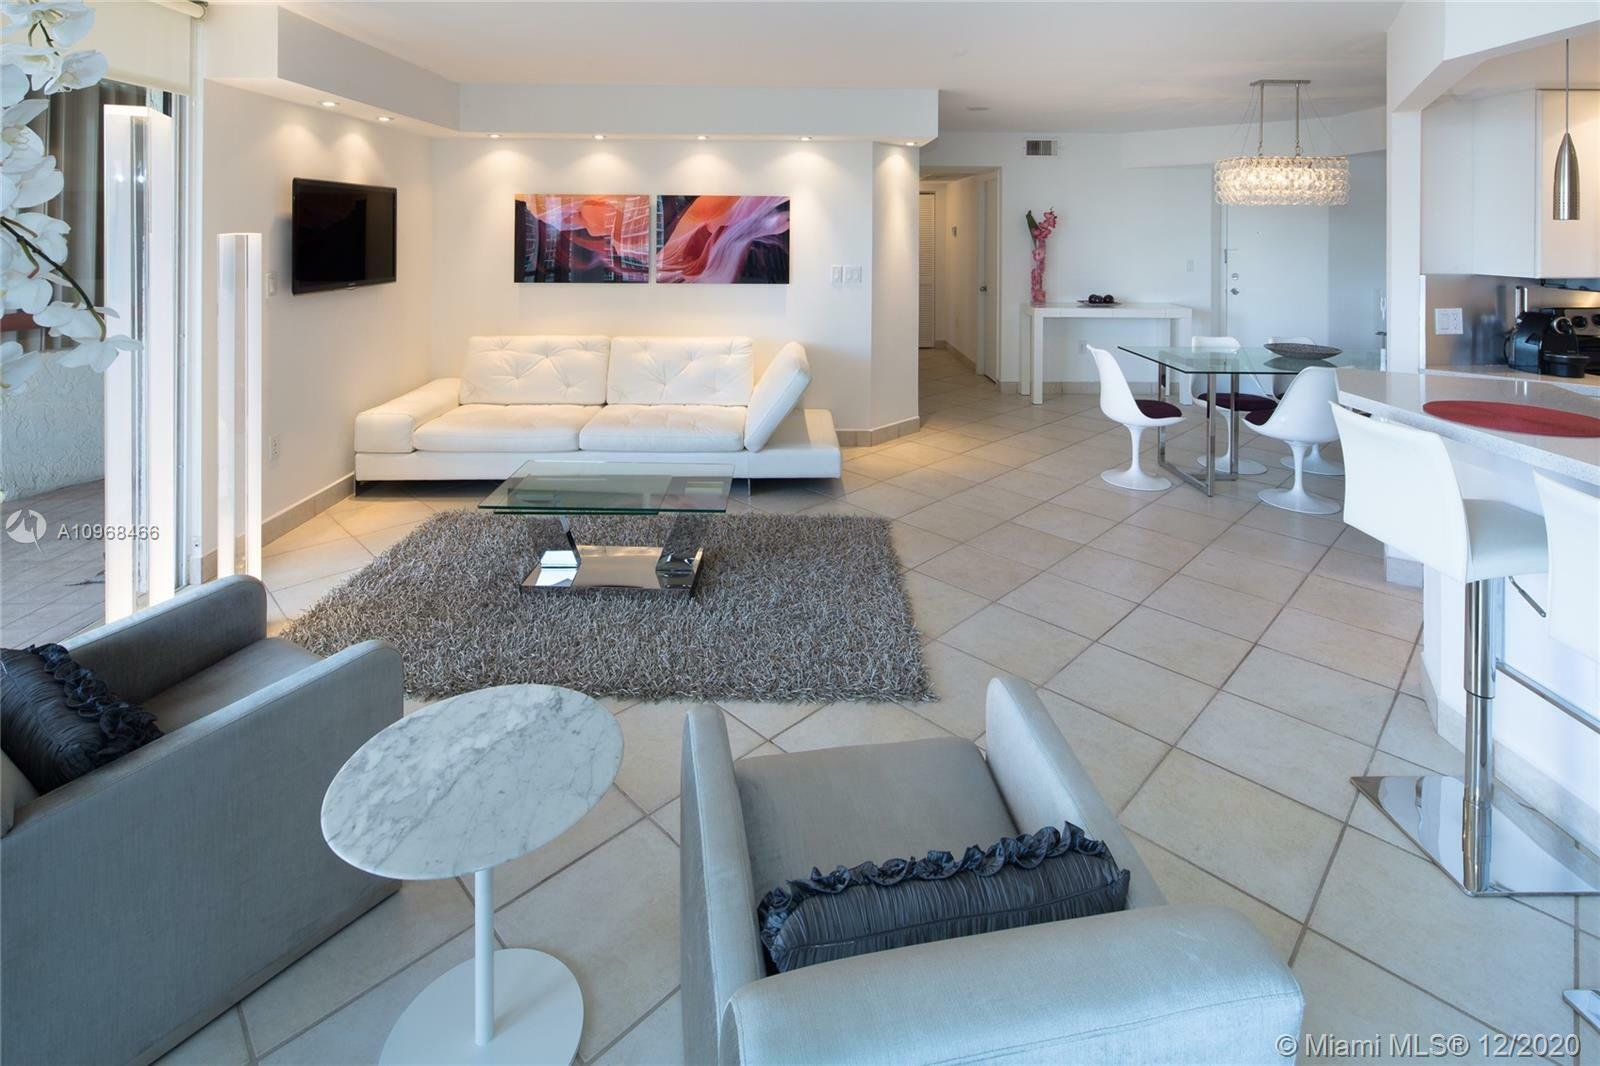 Apartment in Golden Beach, Florida, United States 1